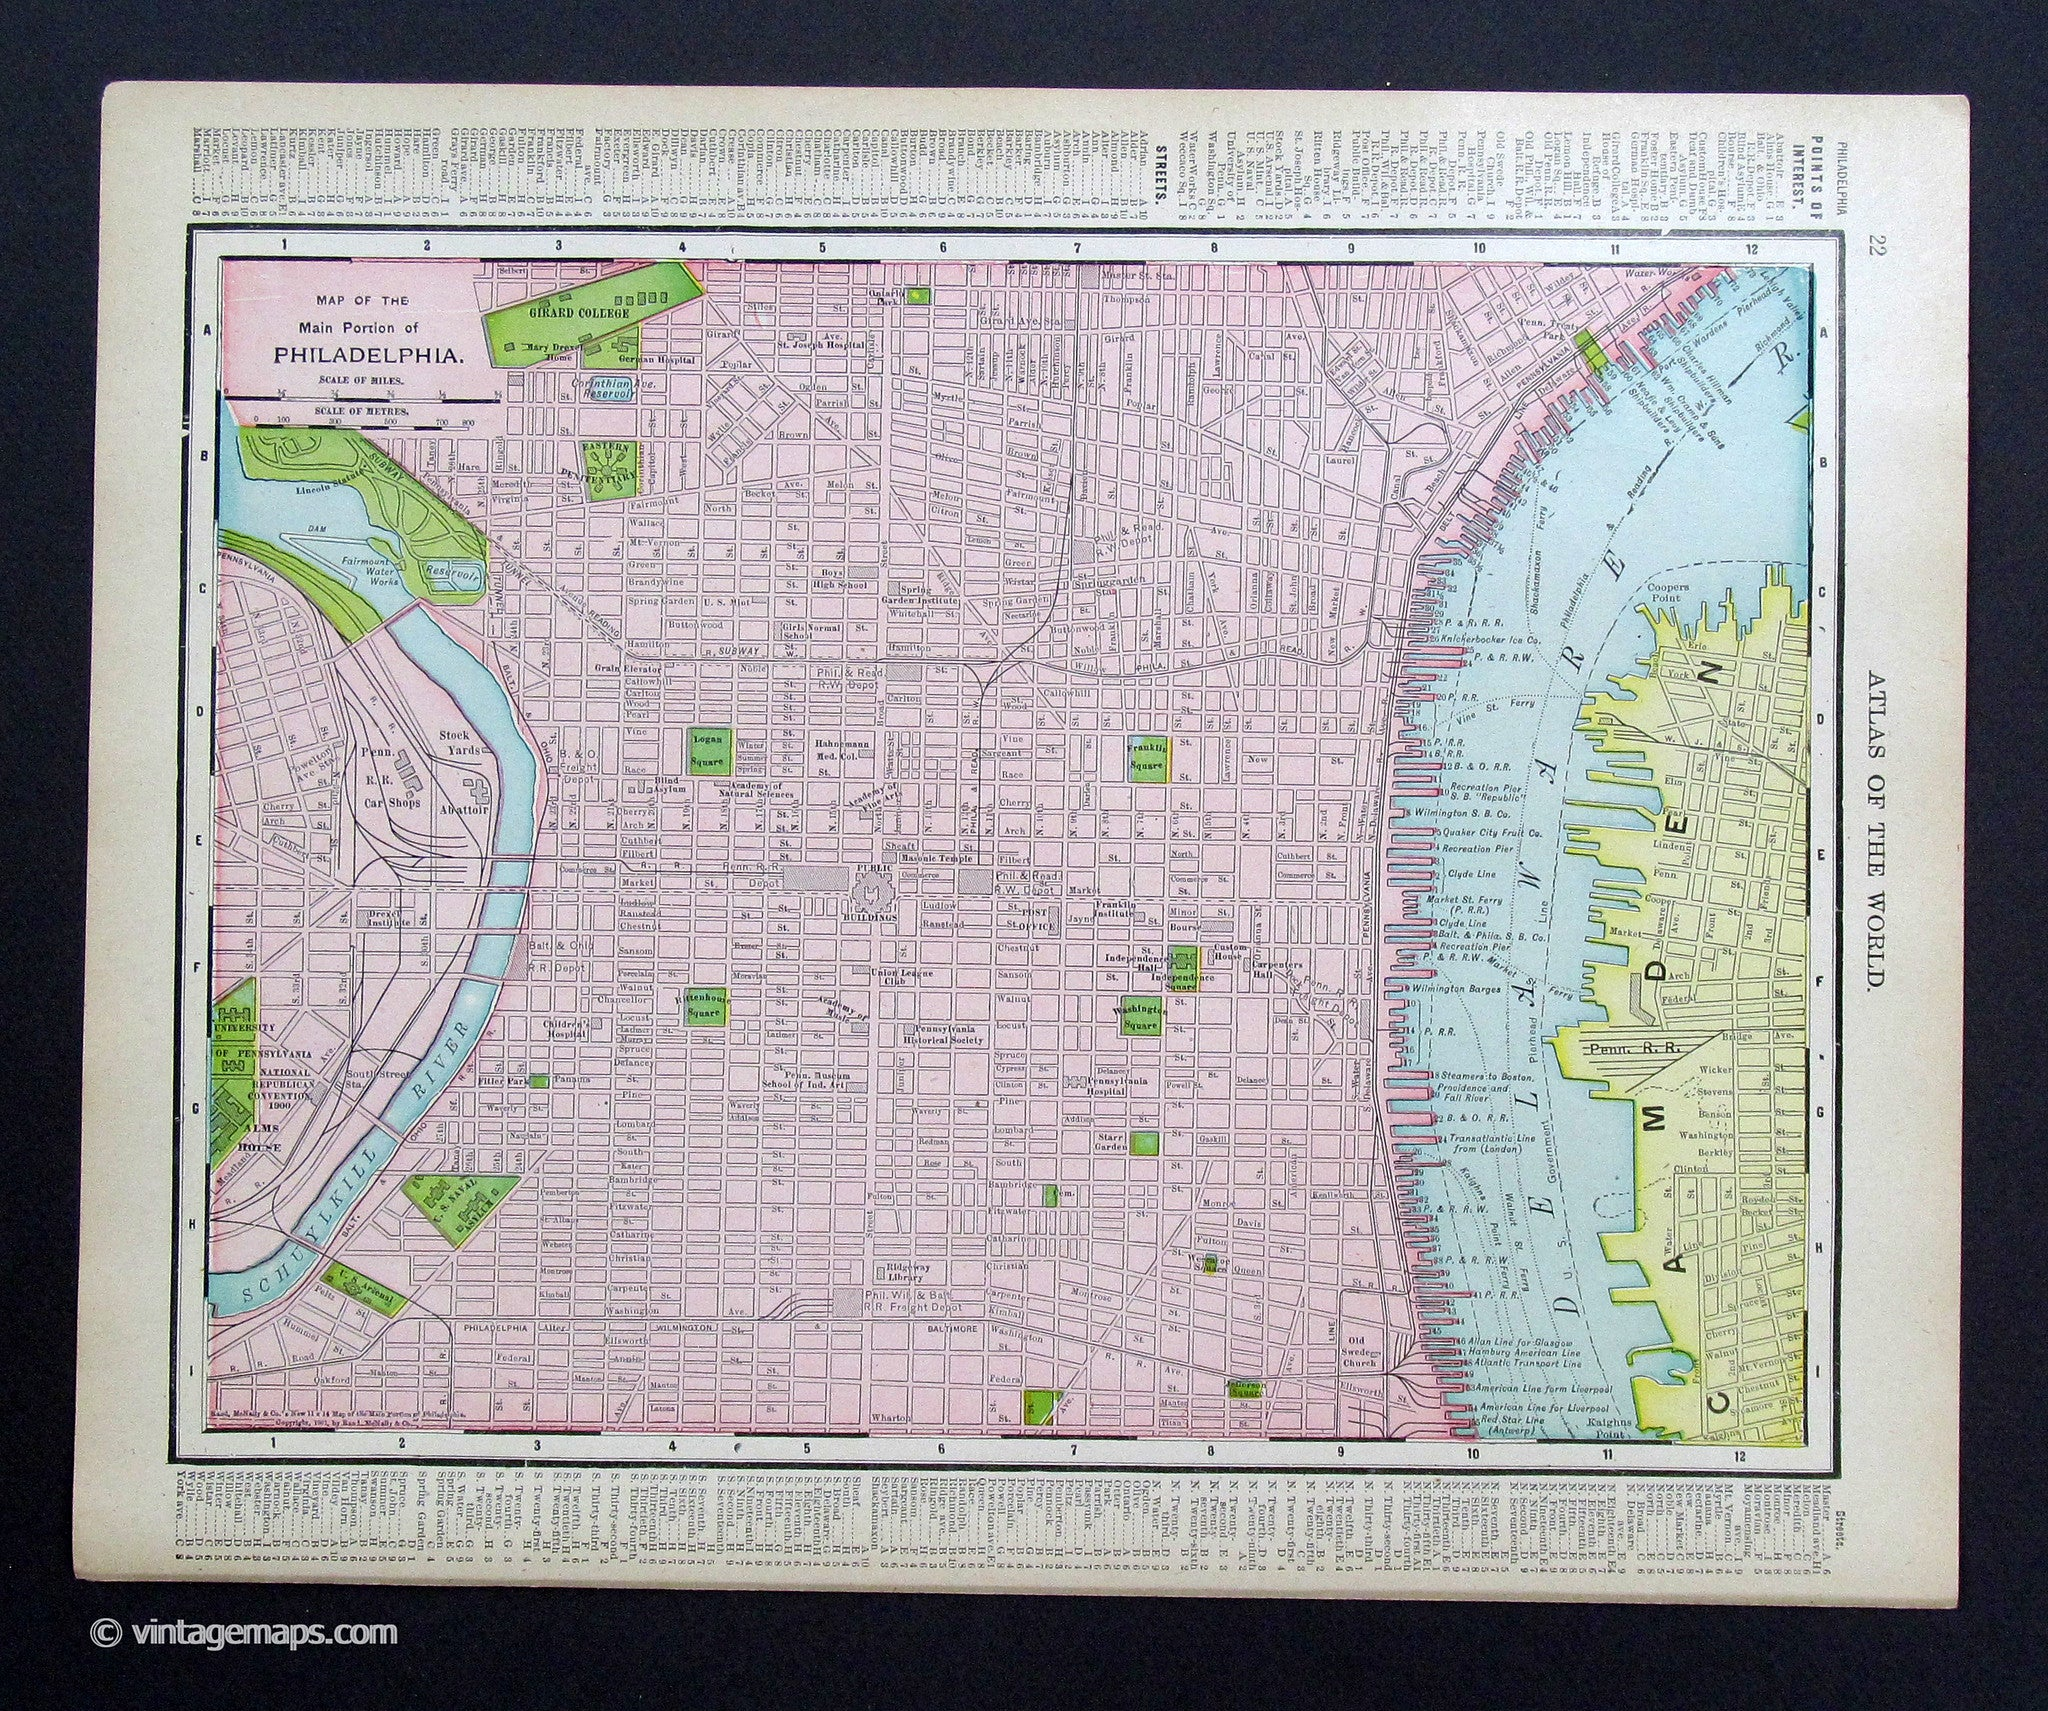 This is a picture of Printable Maps of Philadelphia pertaining to tourist